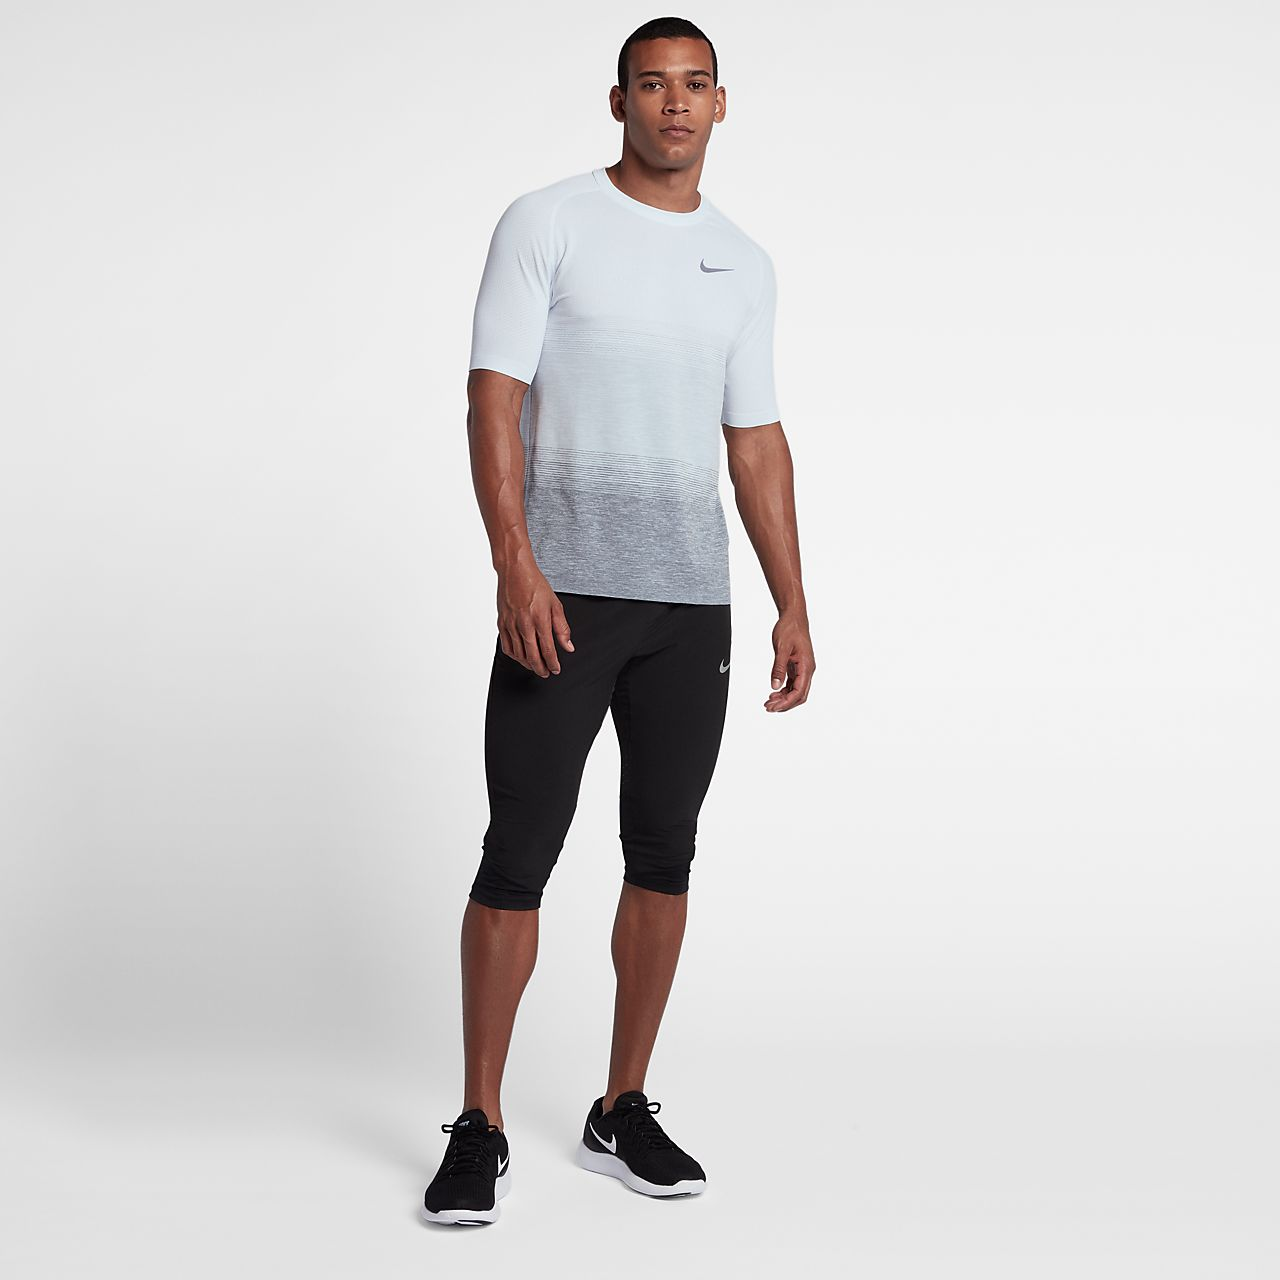 ... Nike Dri-FIT Knit Men's Short-Sleeve Running Top